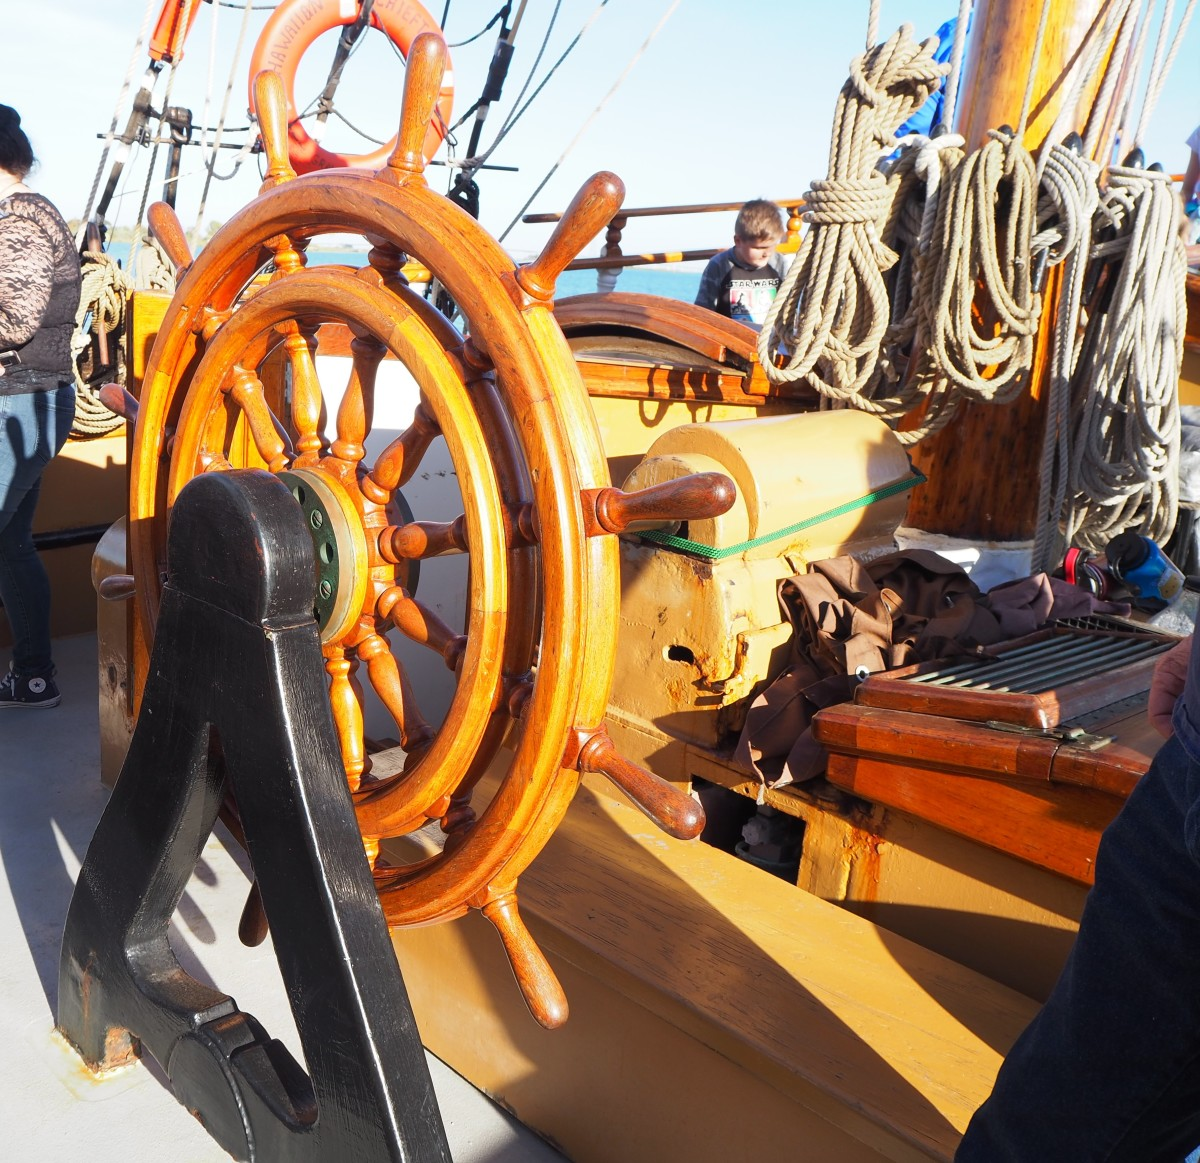 The compass binnacle is just forward of the wheel, so the person steering the ship can easily see it.